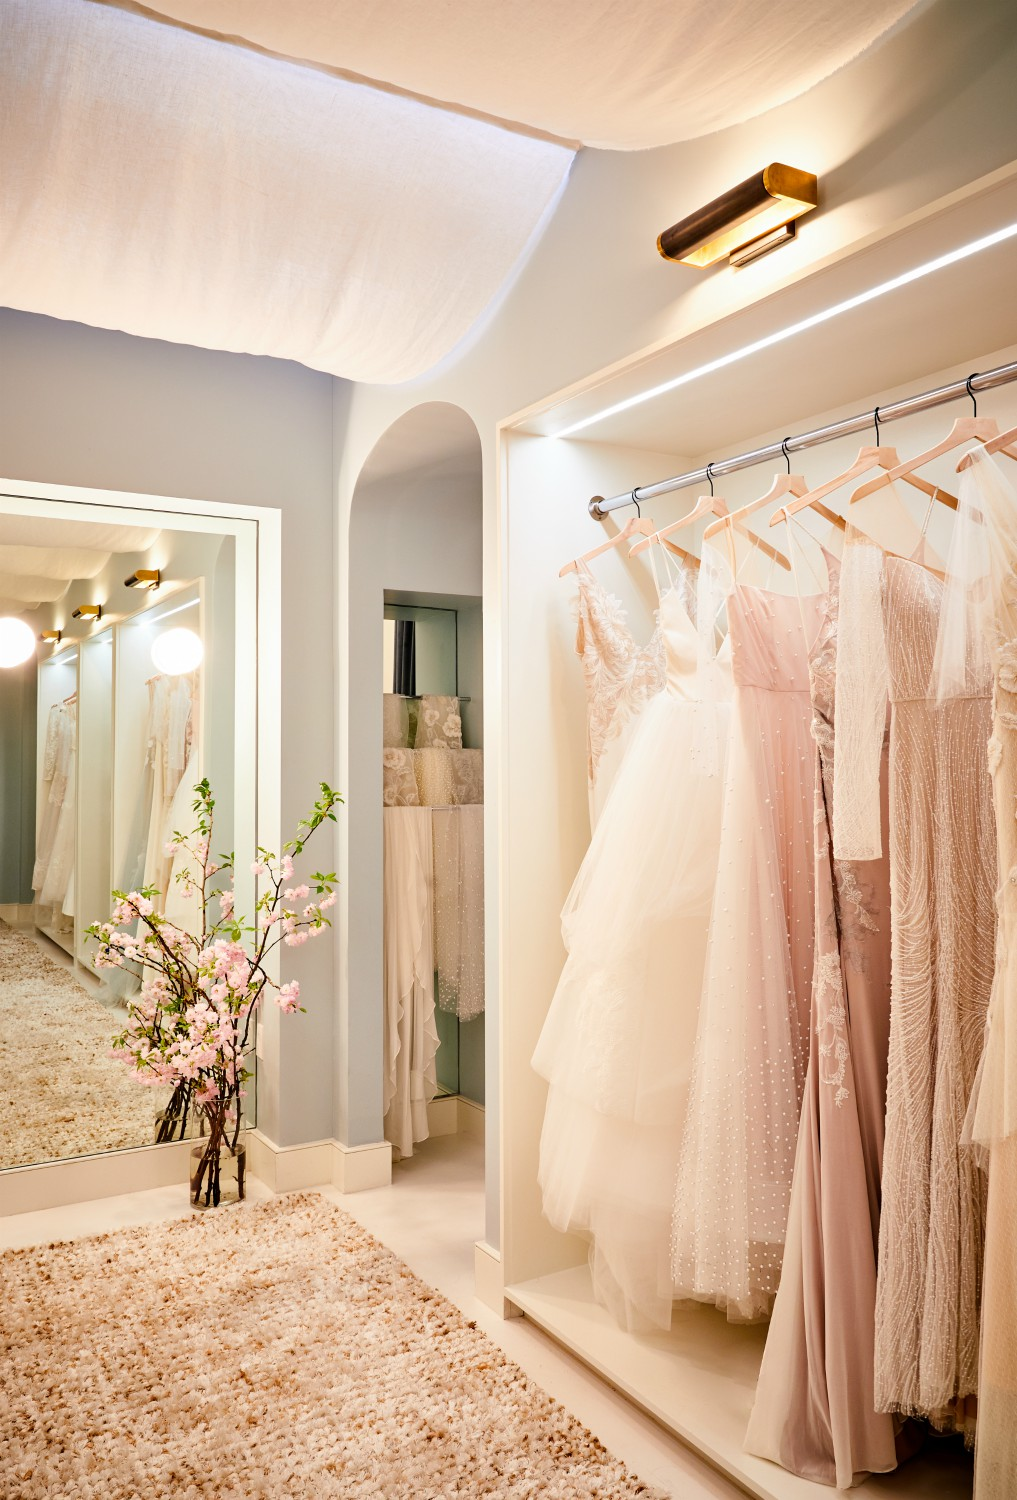 Floravere was founded with a mission to upend the legacy bridal industry and give a new breed of women access to luxury, style, and personalization, otherwise unattainable.